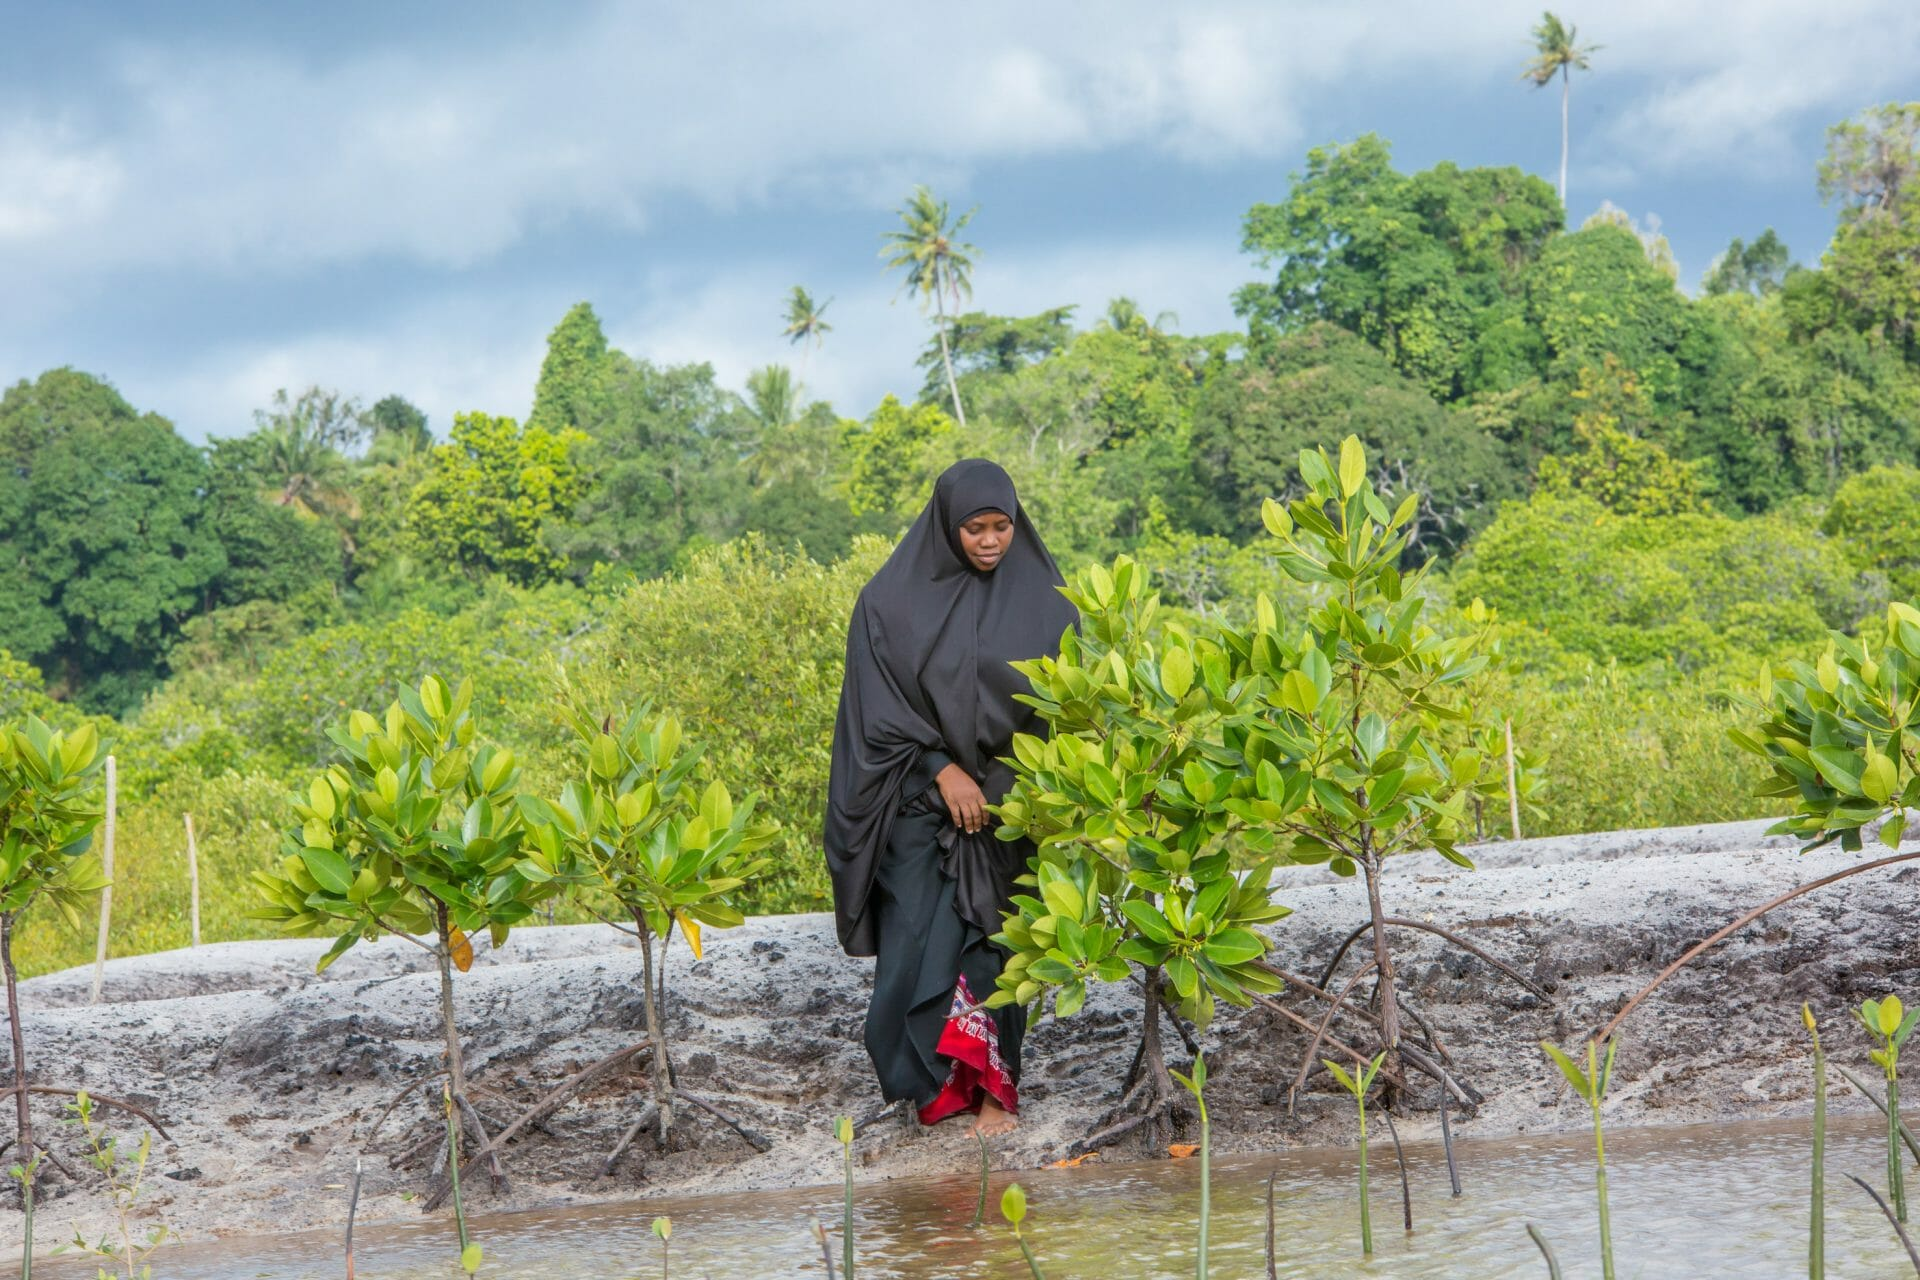 A woman tends to a young mangrove tree on the beach. The sky is stormy in the background.